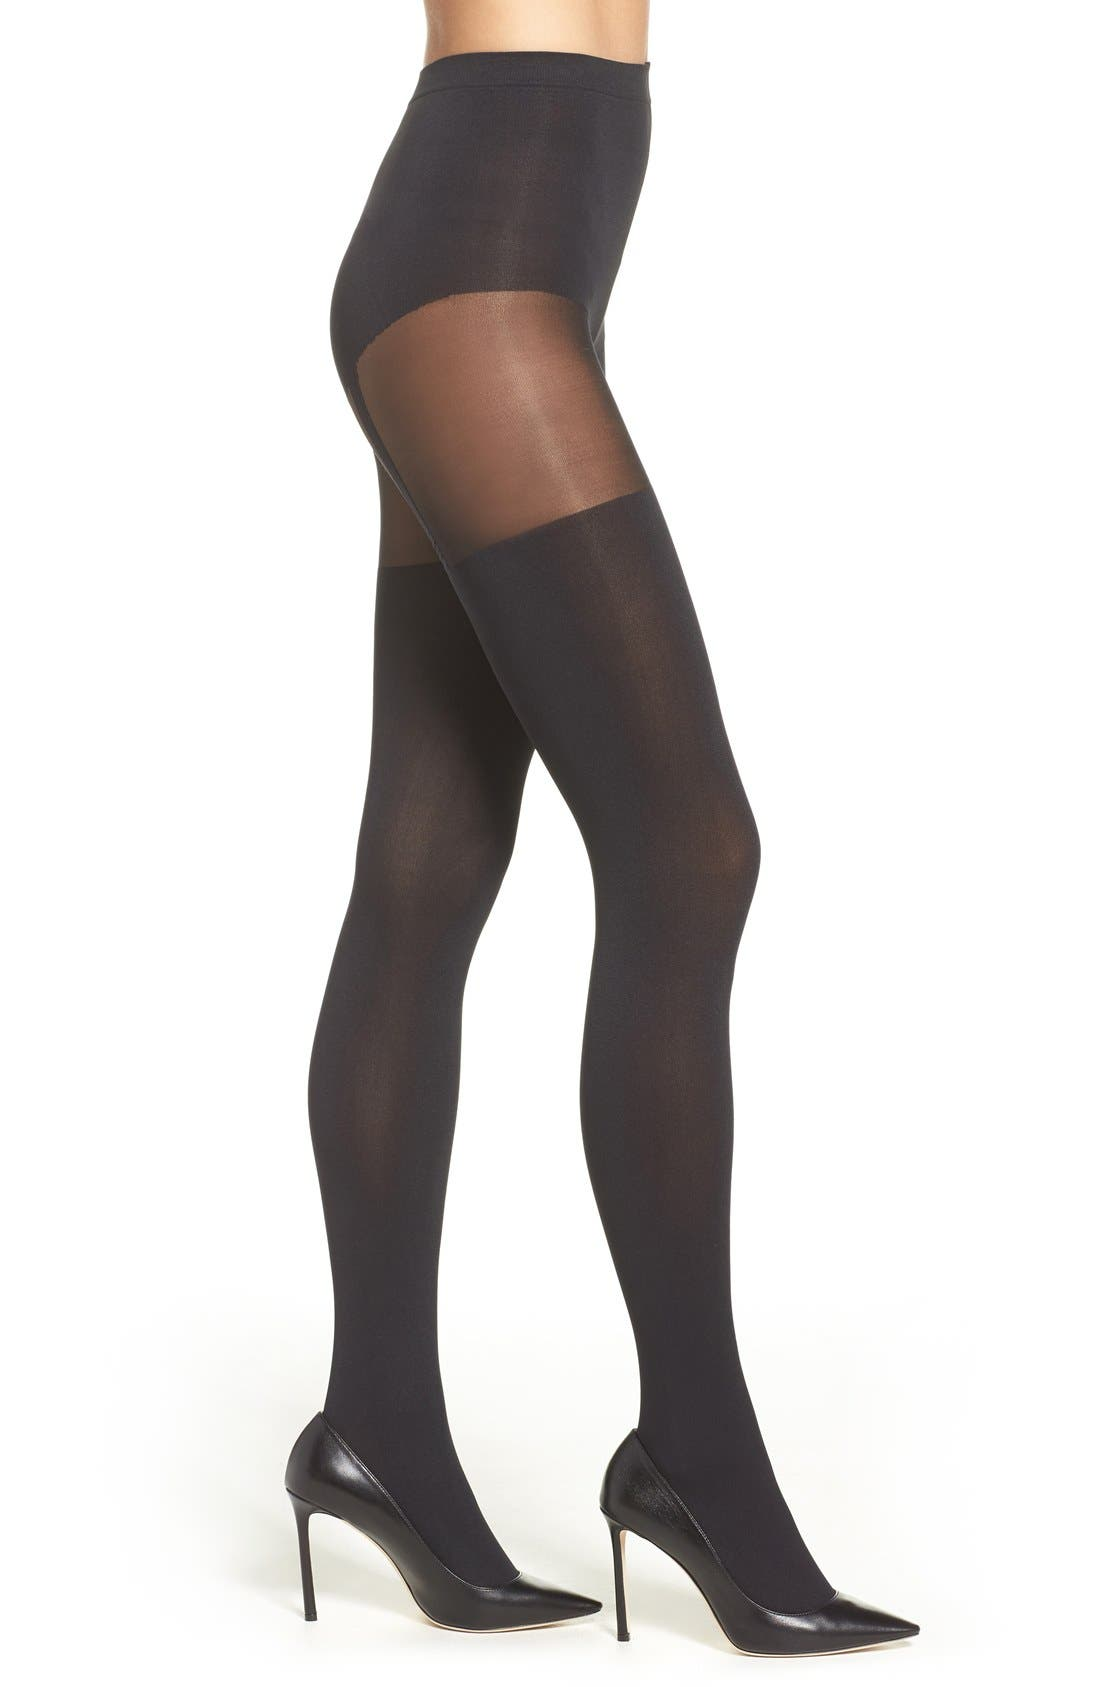 Main Image - Pretty Polly 'Suspended' Tights